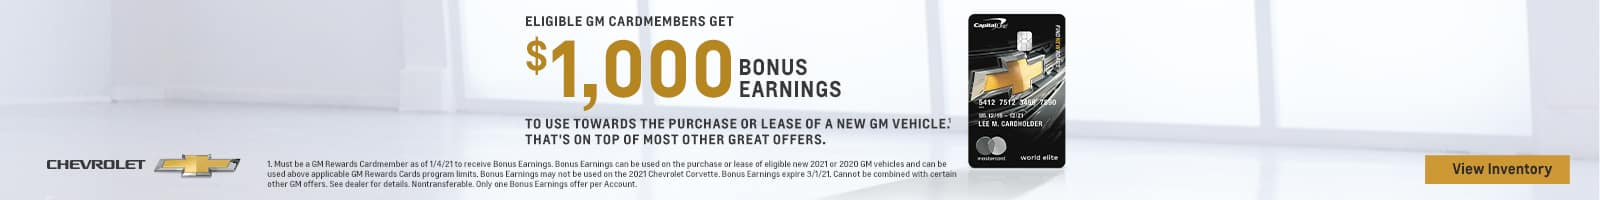 GM Cardmembers 1000 Bonus Earnings